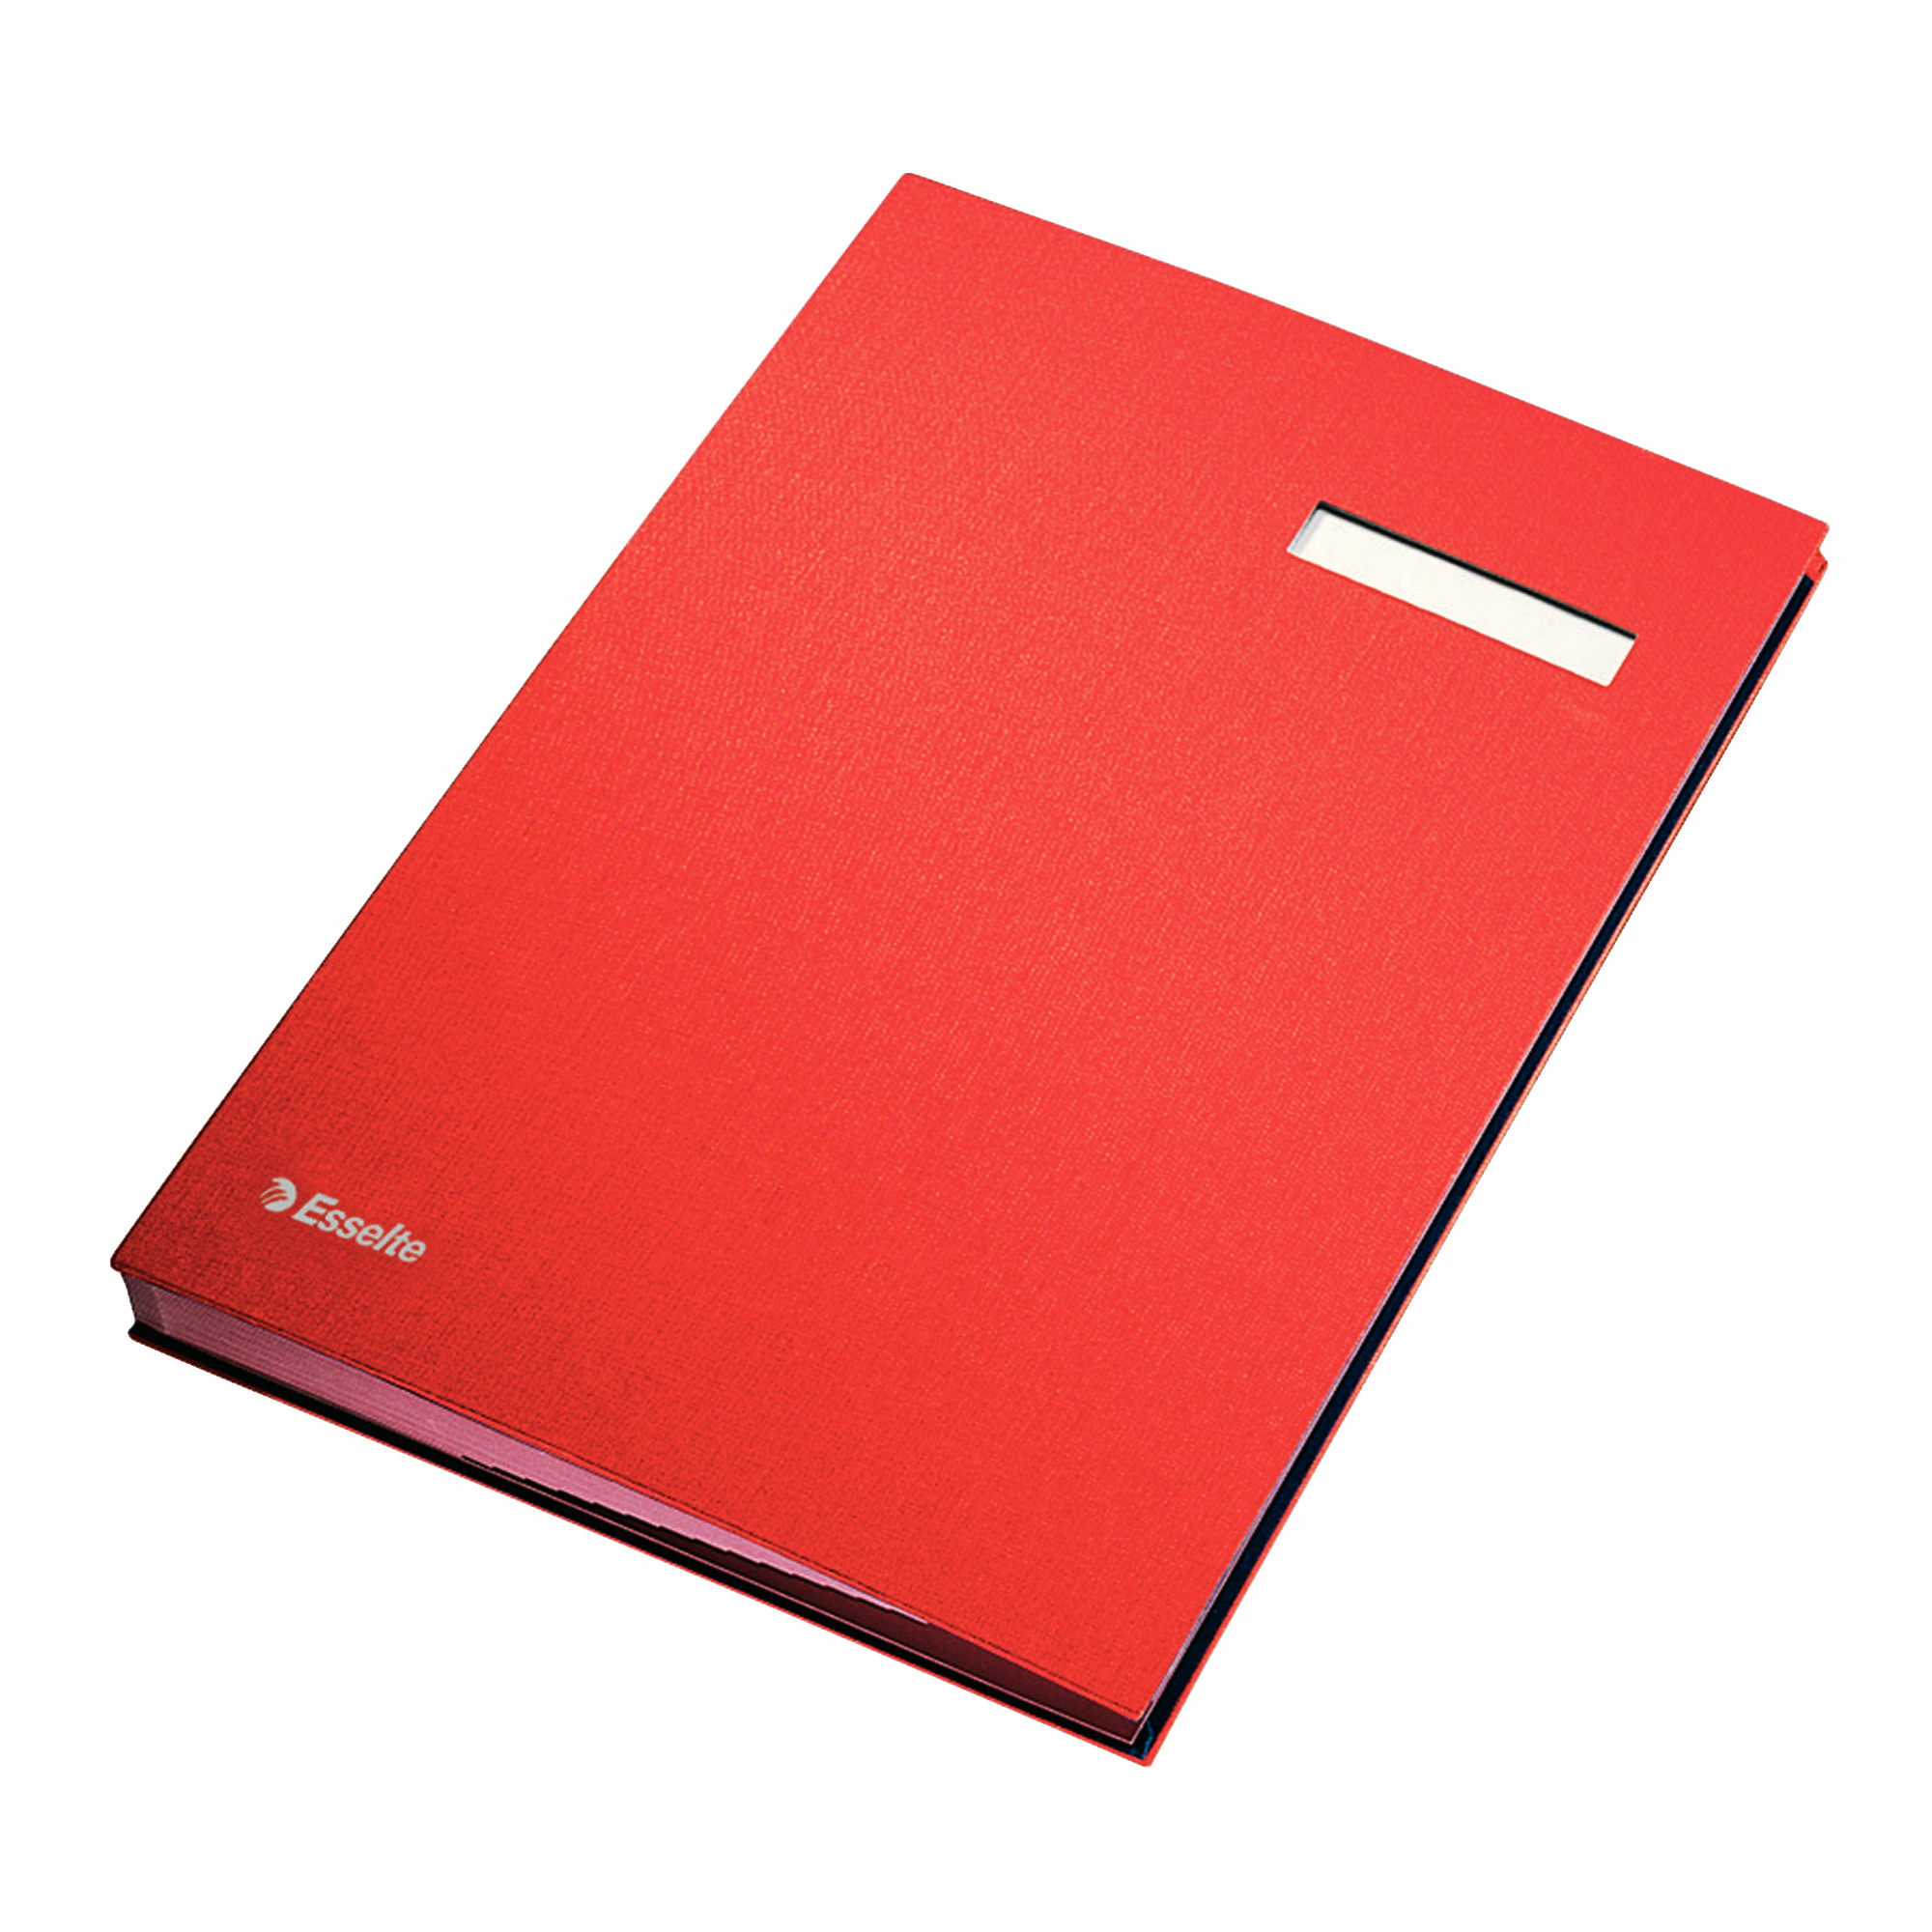 Signature Books Signature Book 20 Compartments Durable Blotting Card 340x240mm Red